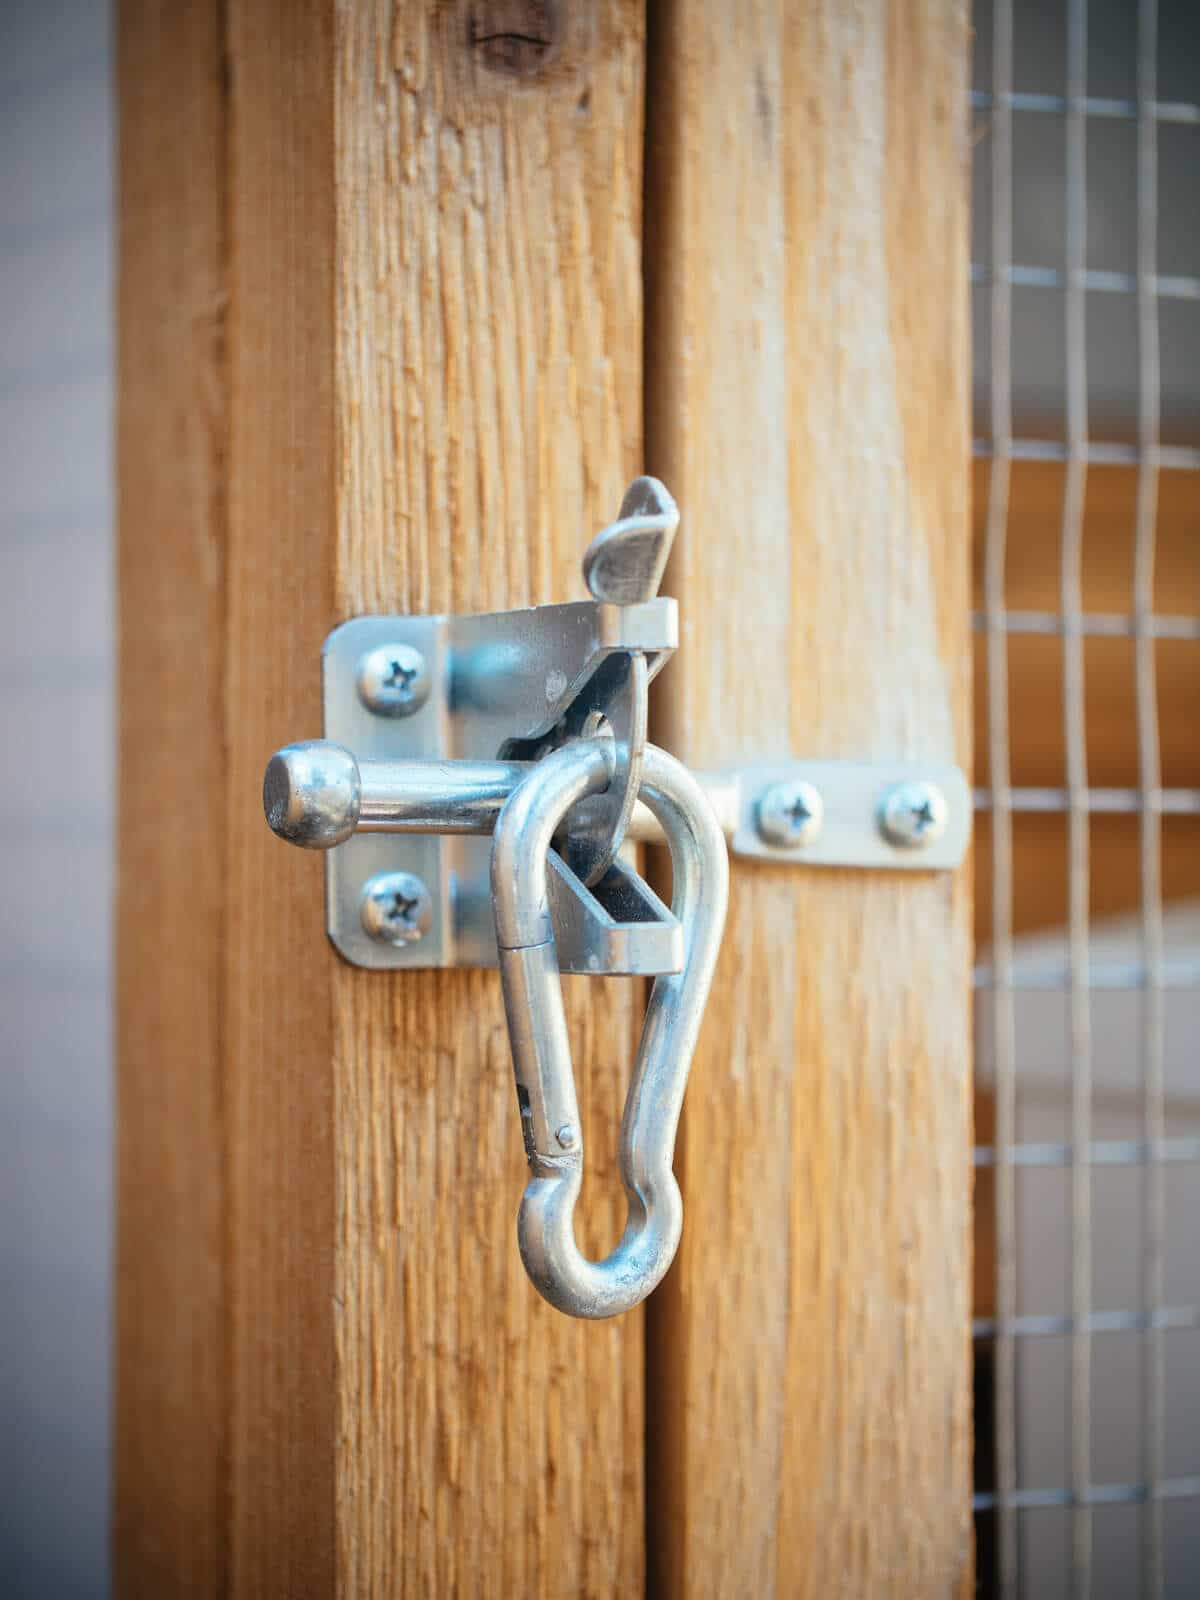 Gate latch secured with spring link